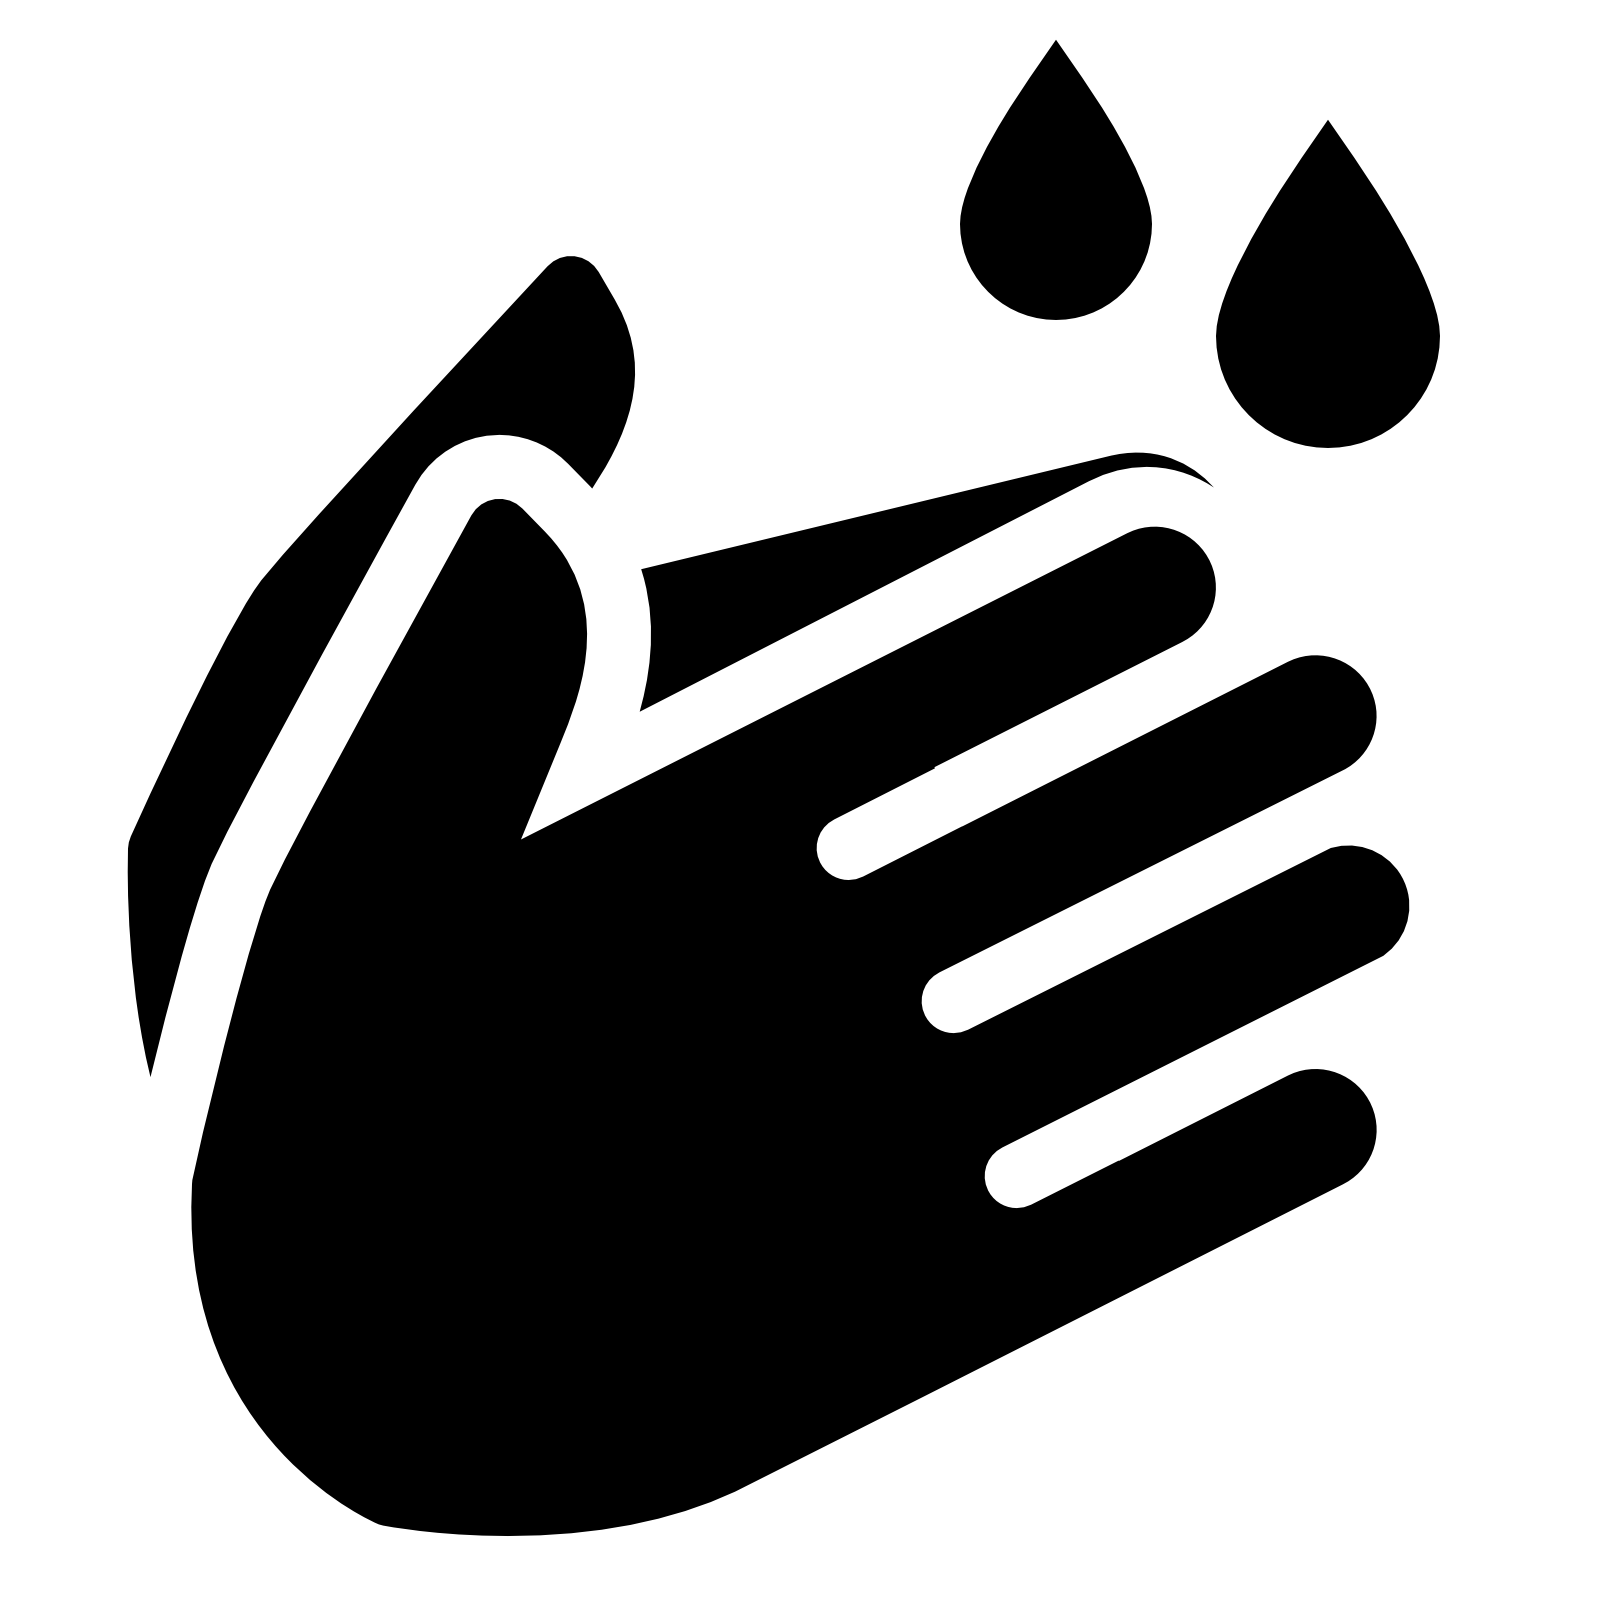 Free clipart images hand washing picture PNG Hand Washing Transparent Hand Washing.PNG Images. | PlusPNG picture